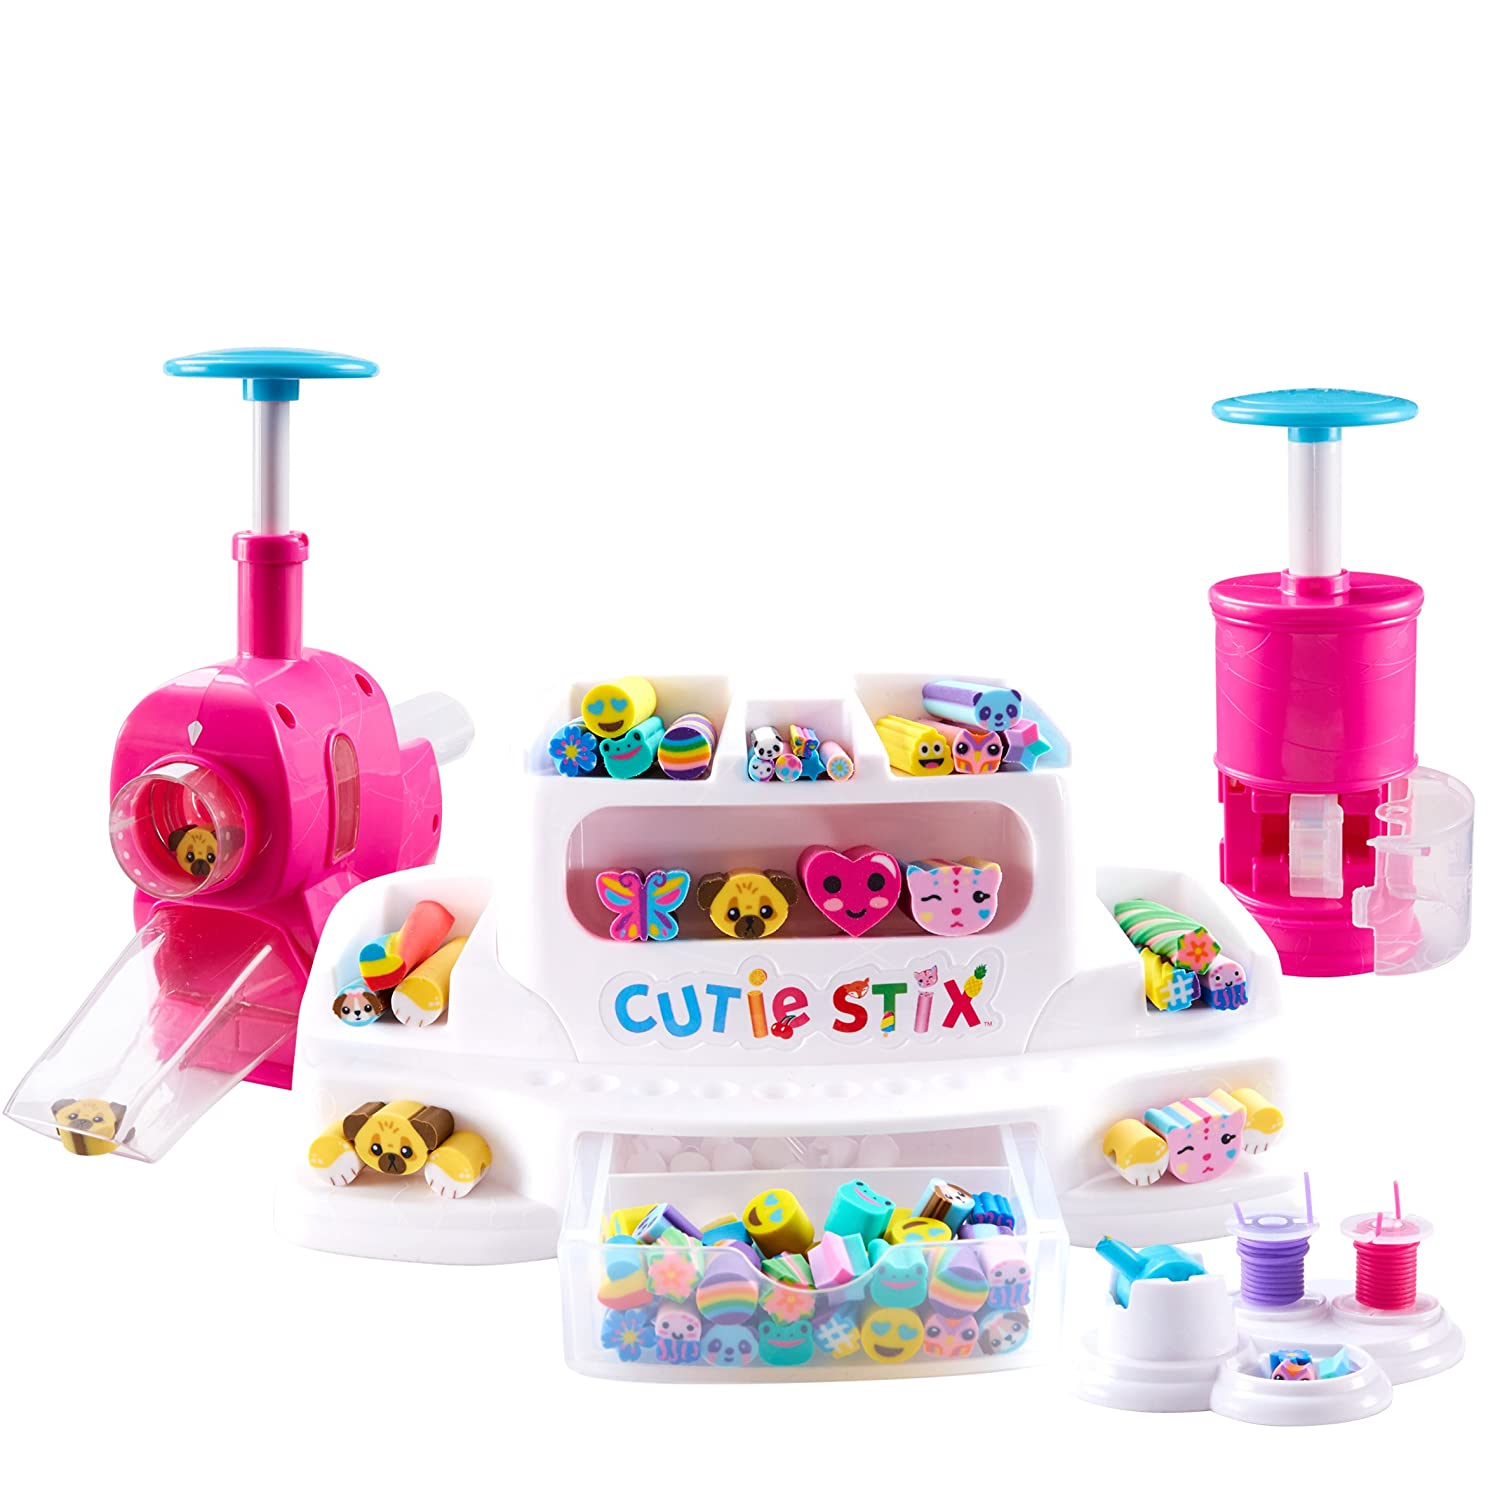 Cutie Stix Jewelry Making Kit.